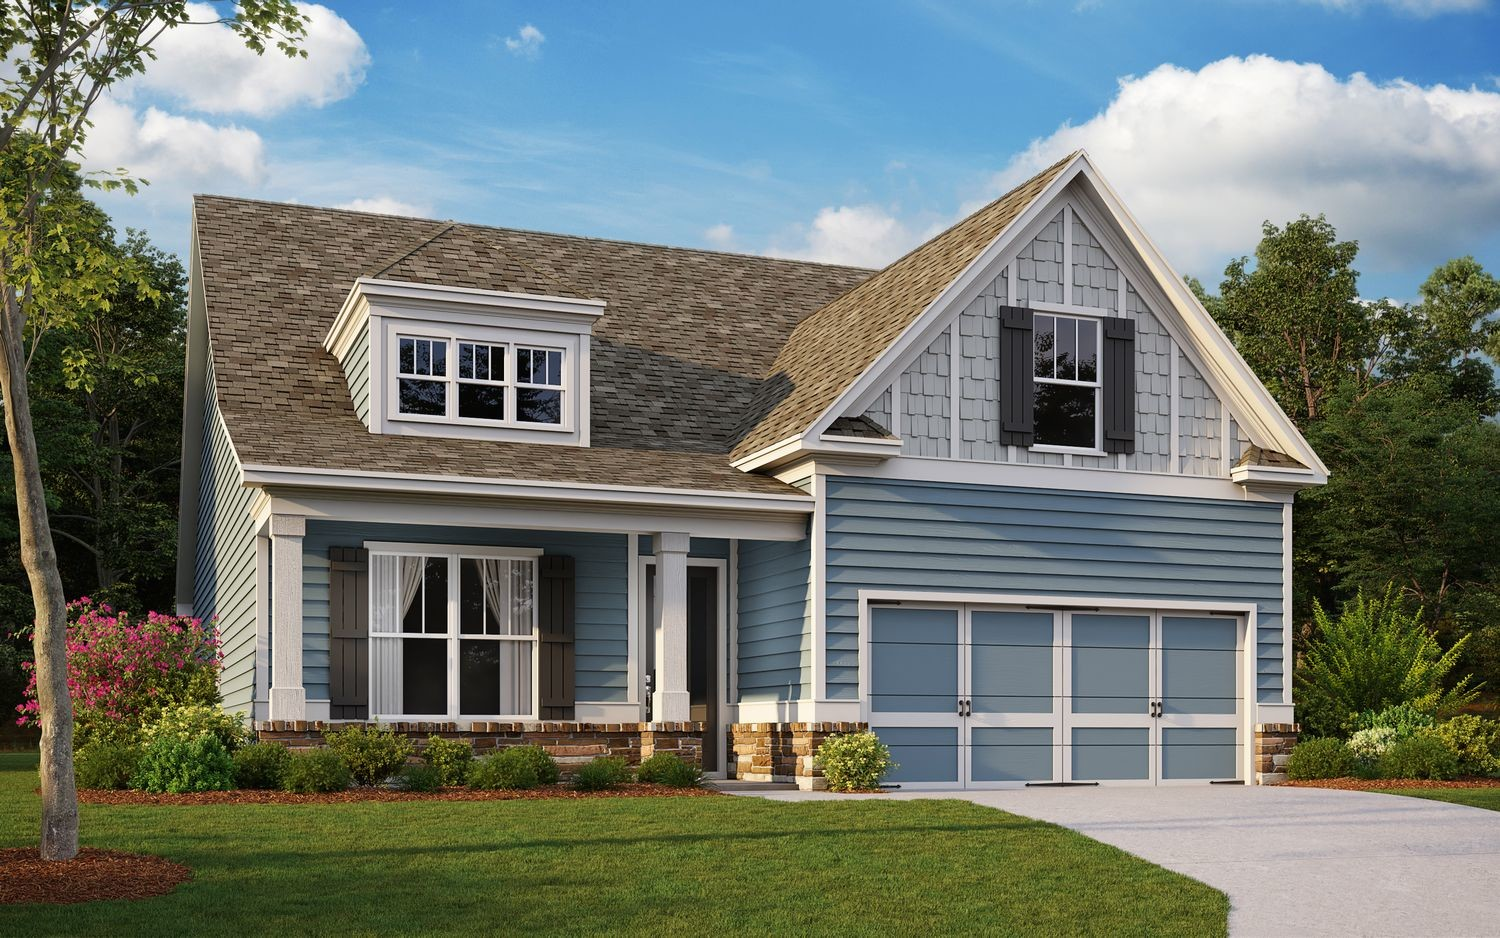 Ready To Build Home In Heritage Pointe at The Georgian Community